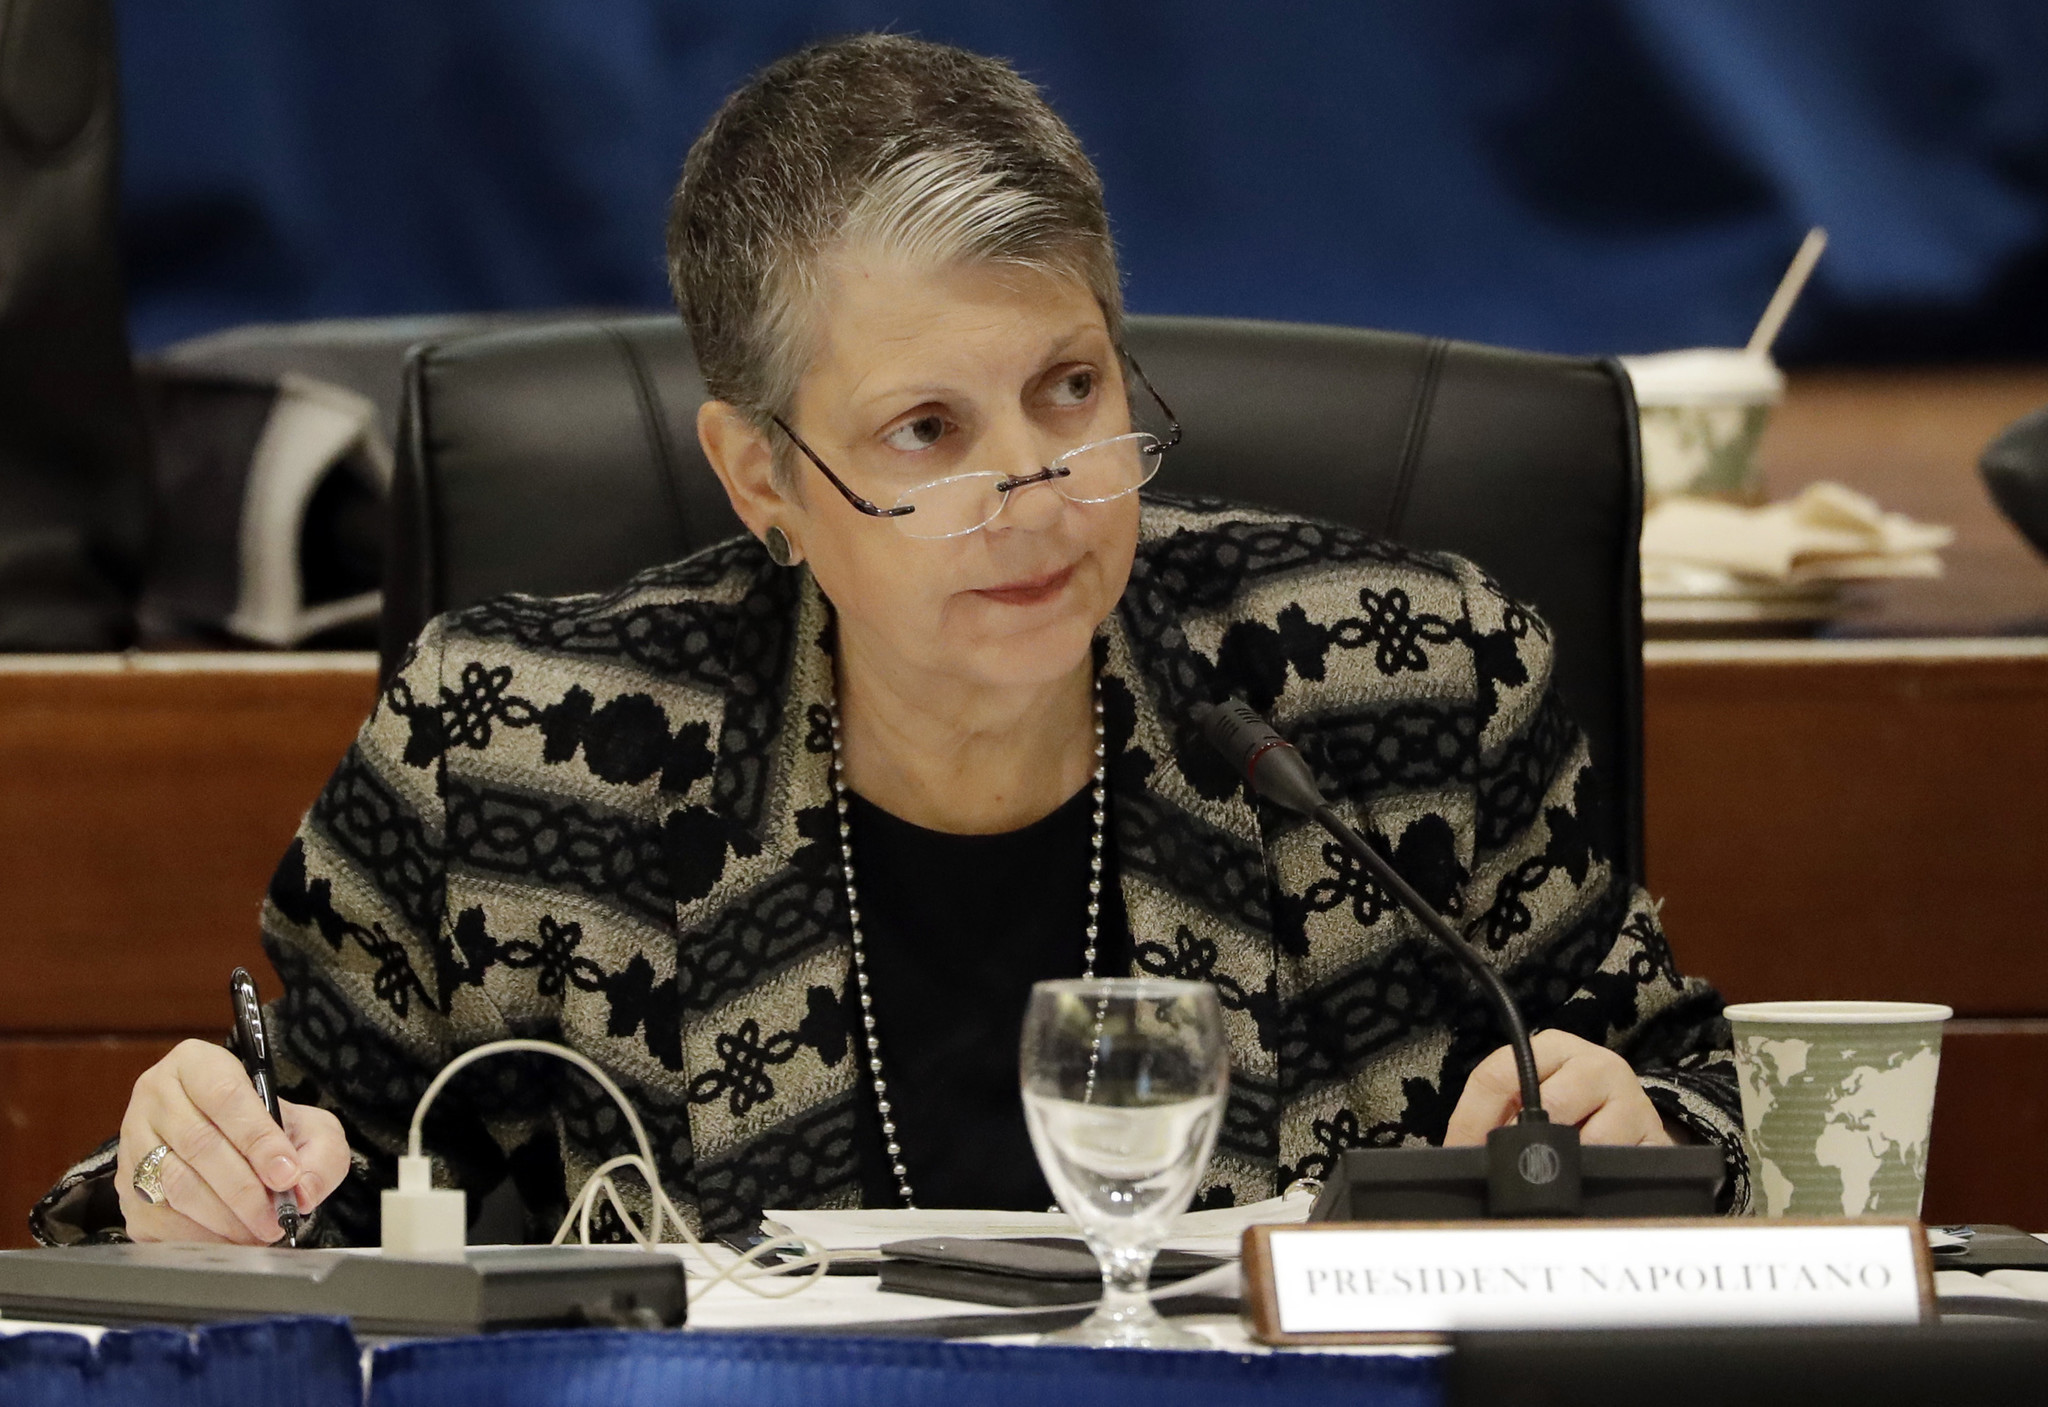 University of California President Janet Napolitano attends a UC Board of Regents meeting in January. (Marcio Jose Sanchez /  Associated Press)